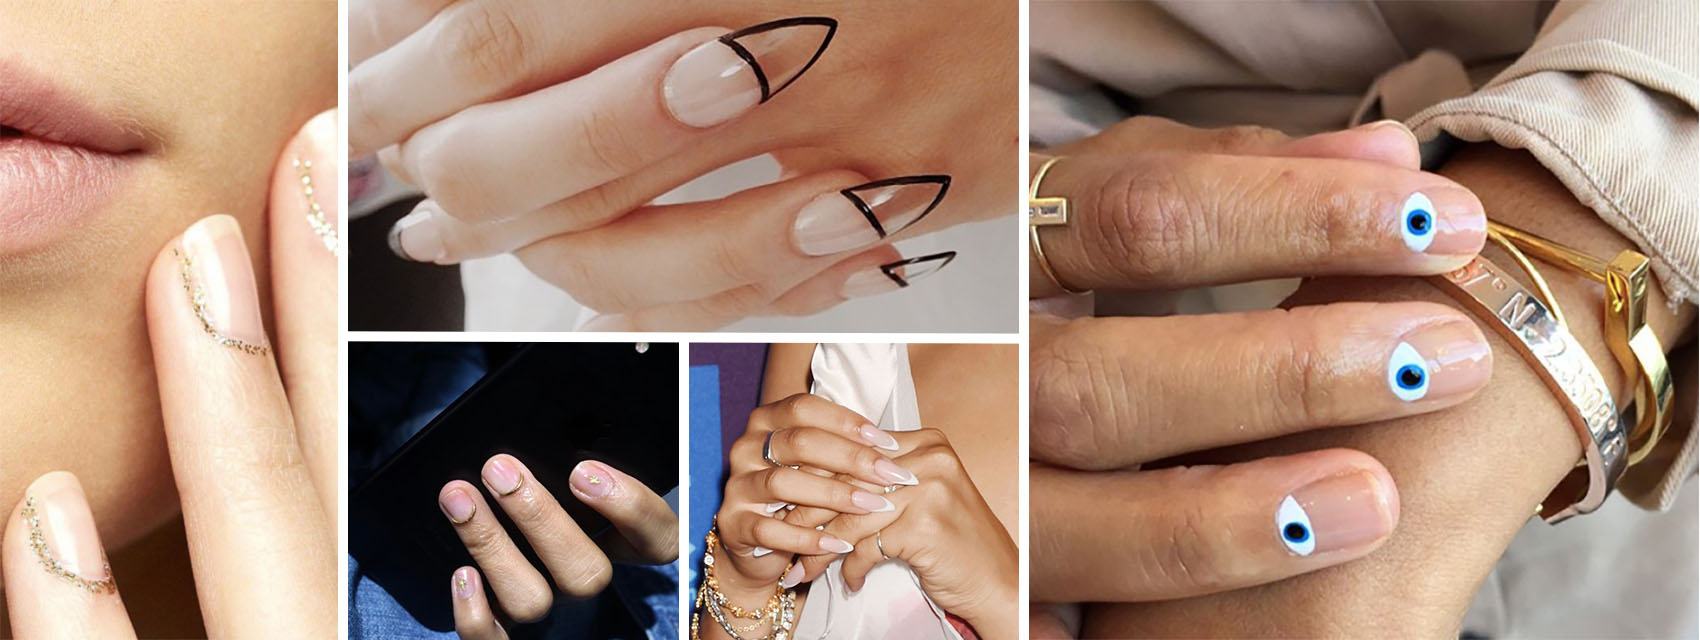 How To Pull Off The Clear Nail Trend